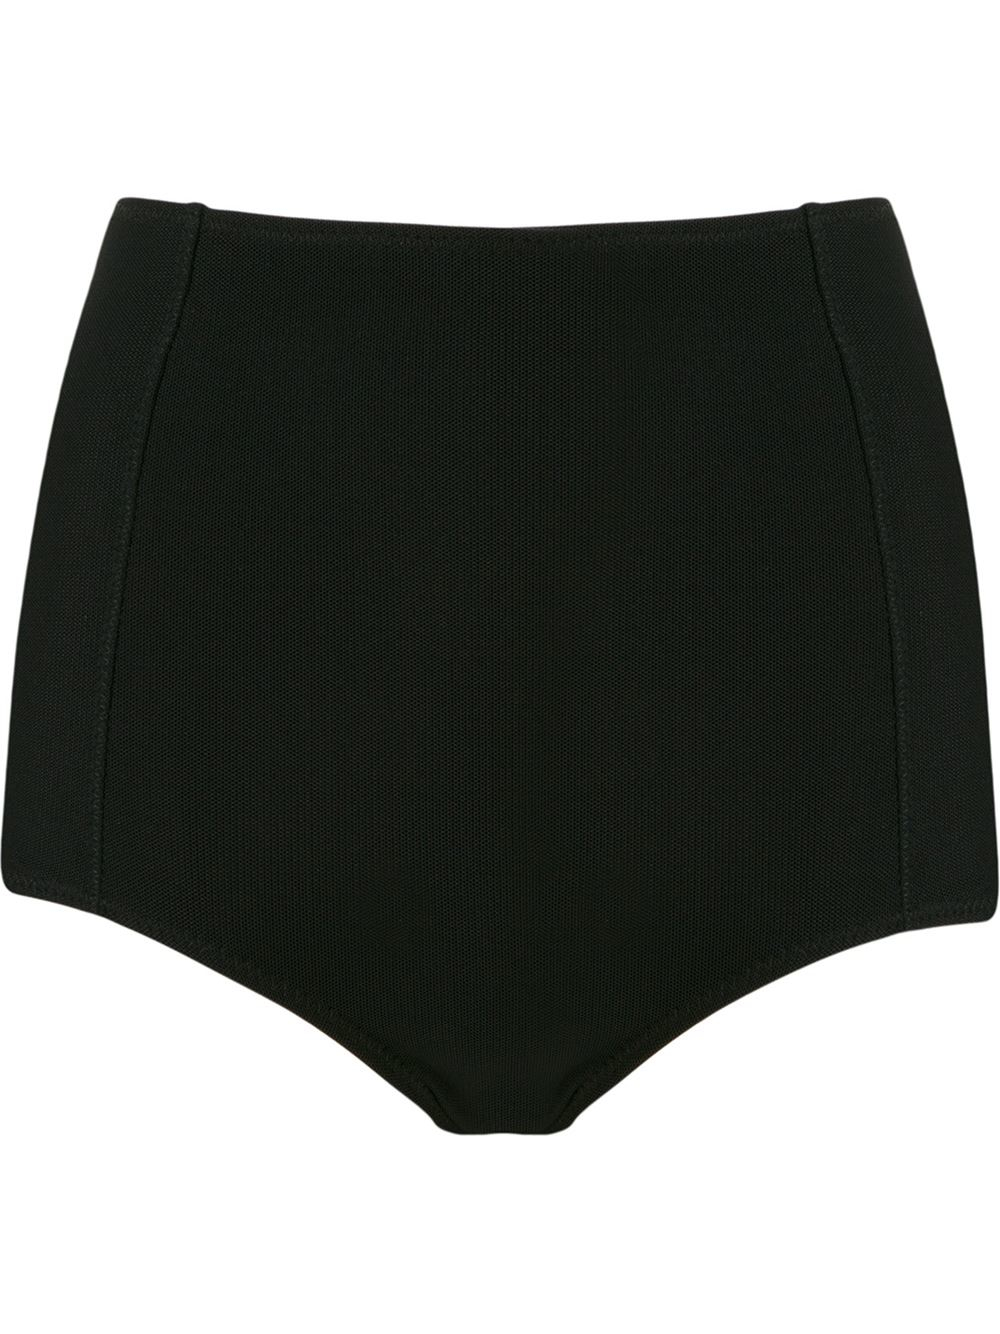 327b8b579a0149 Giuliana Romanno Panelled Hot Pants in Black - Lyst